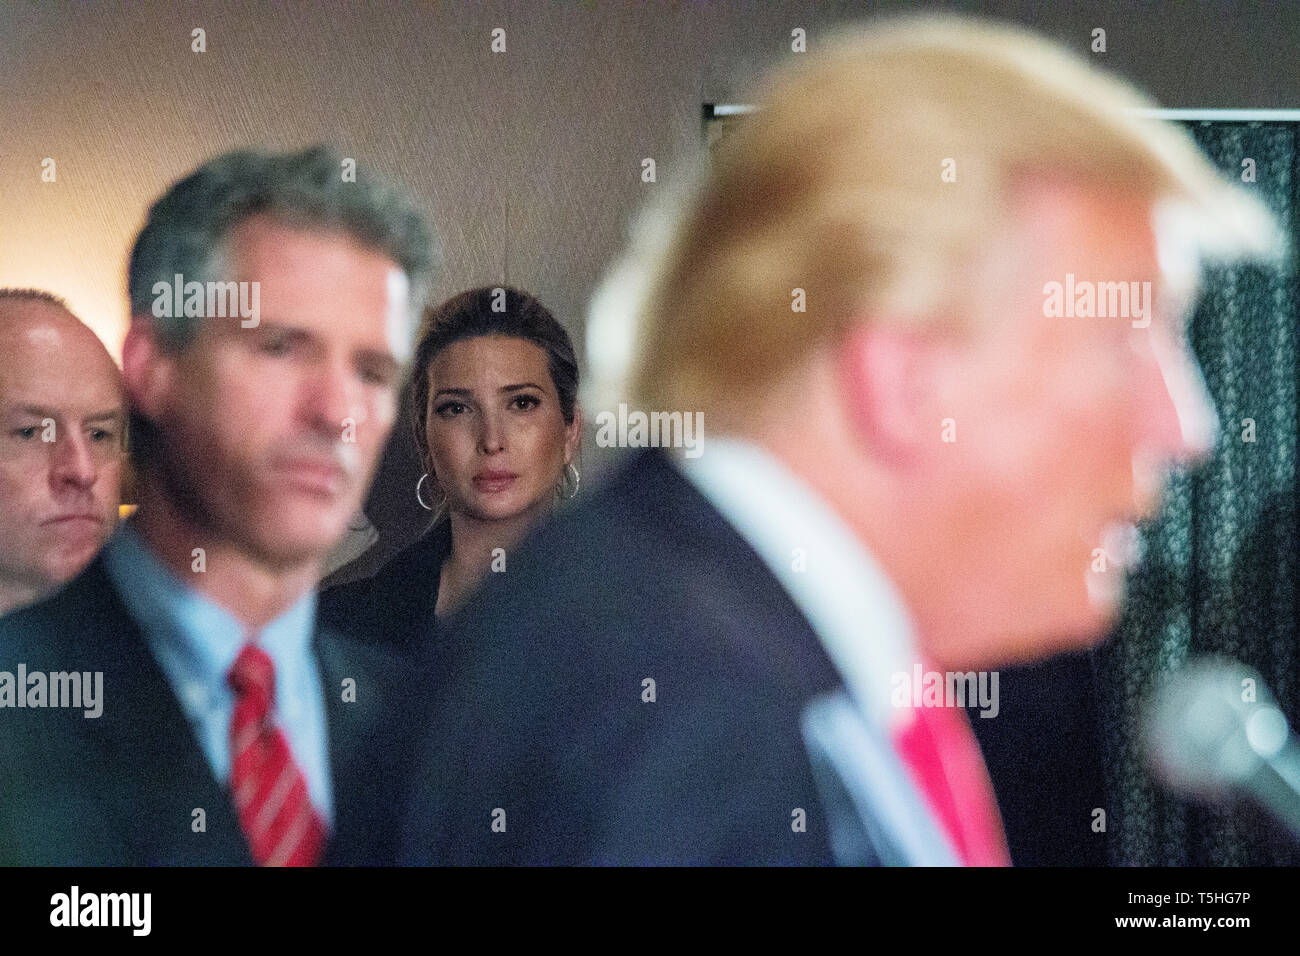 Ivanka Trump listens in the background as her father, the republican Presidential candidate Donald J. Trump hosts a press conference in Milford, NH, where he announced the endorsement from former Massachussetts Senator Scott Brown (left). Stock Photo